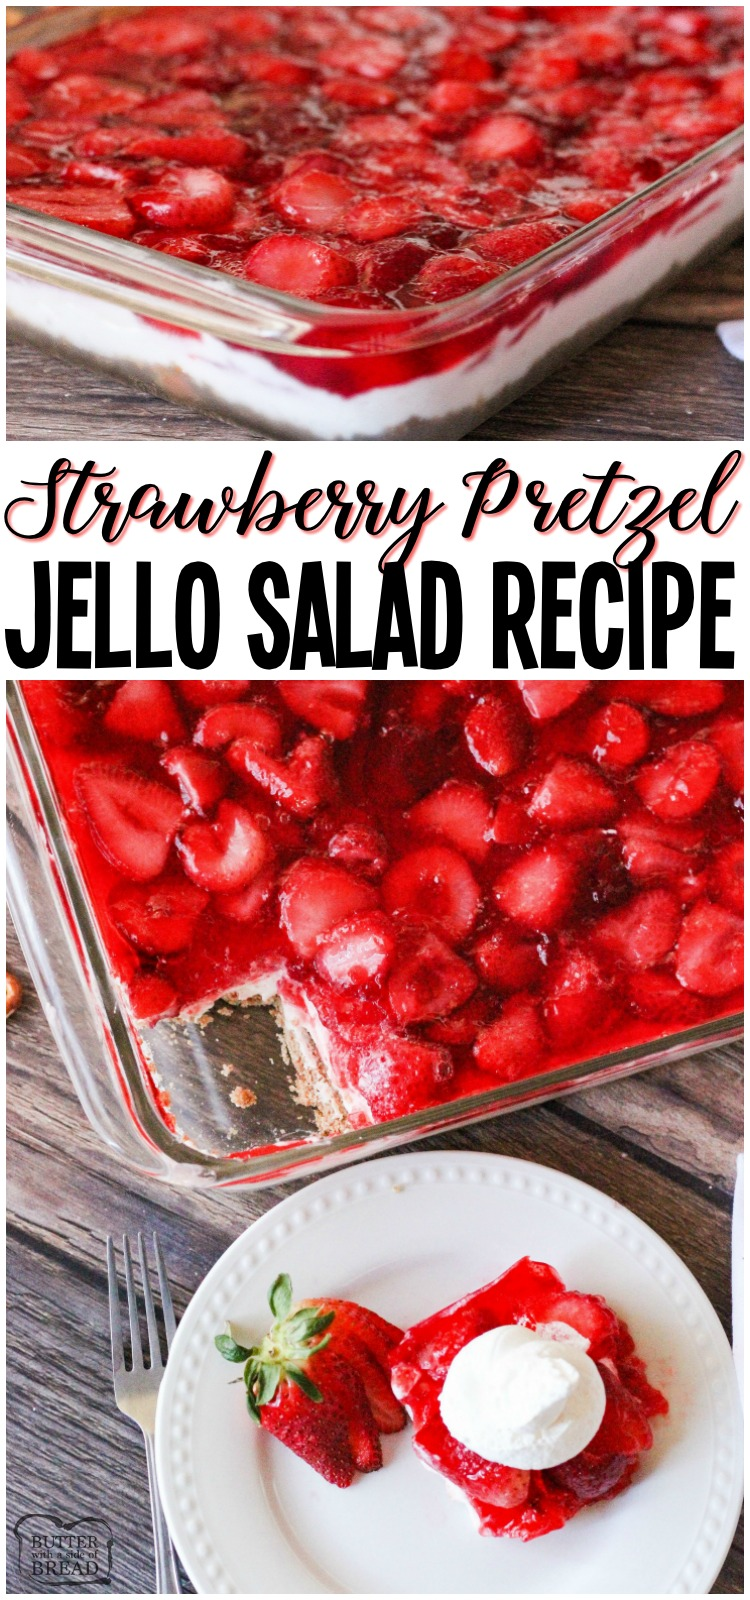 Gorgeous Strawberry Pretzel Salad layered with a buttery pretzel crust, cream cheese whipped topping, strawberries and jello. A simple sweet side dish that is always the first to go! #salad #strawberry #jello #pretzel #strawberries #potluck #recipe from BUTTER WITH A SIDE OF BREAD